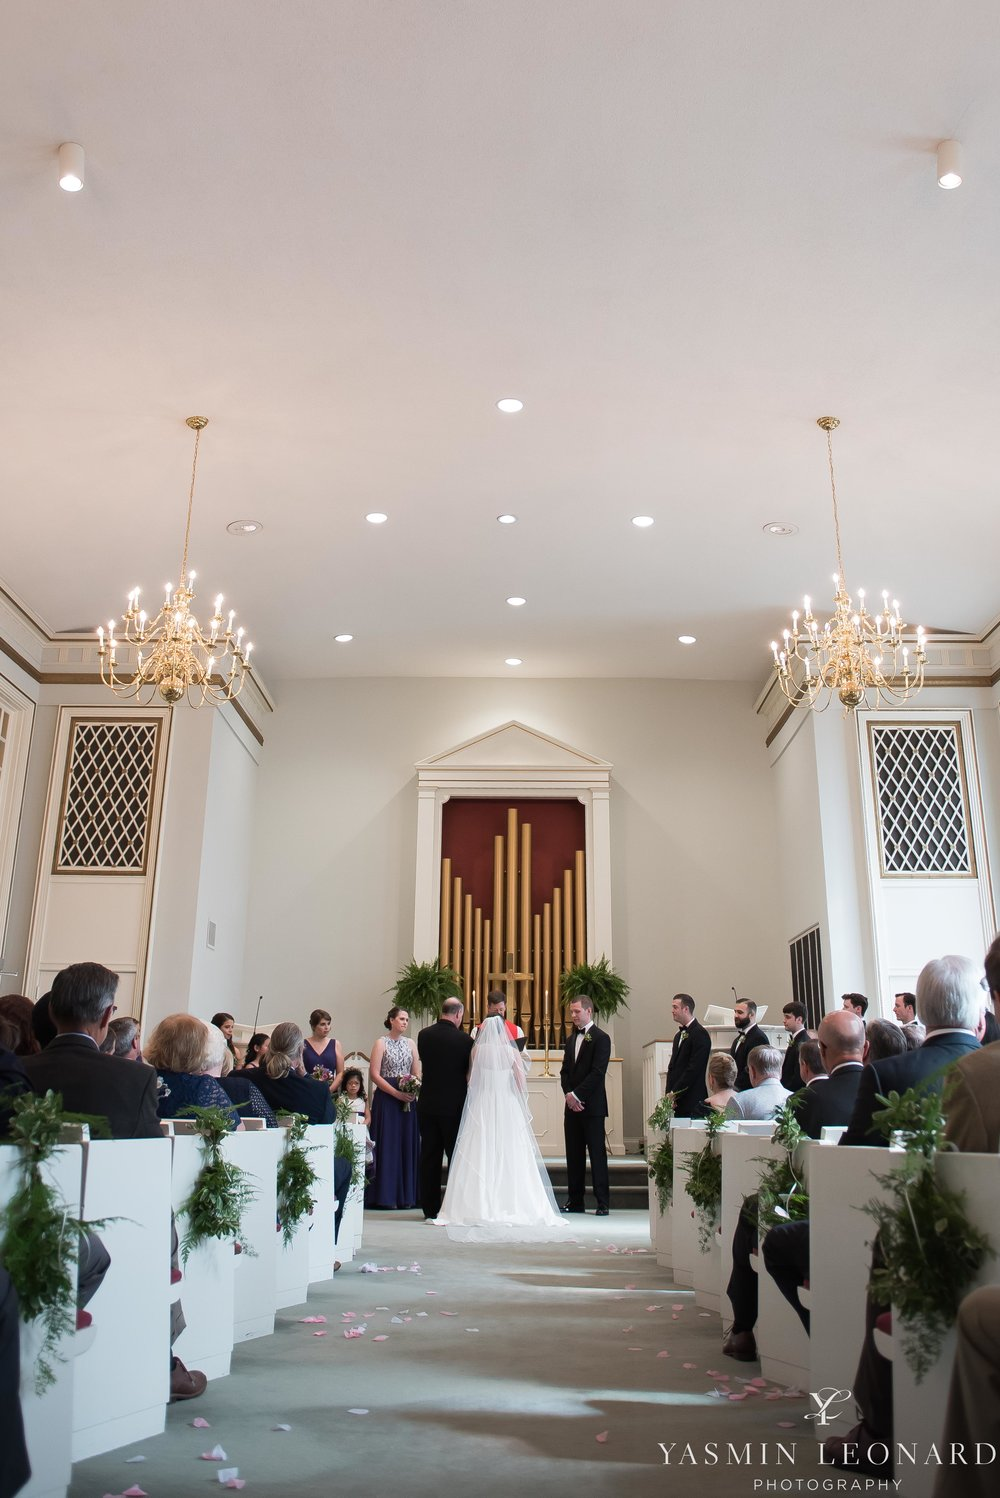 JH ADAMS INN - HIGH POINT UNIVERSITY CHAPEL WEDDING - HPU CHAPEL - HIGH POINT WEDDINGS - NC WEDDING PHOTOGRAPHER - YASMIN LEONARD PHOTOGRAPHY - HIGH POINT NC - HIGH POINT WEDDINGS -28.jpg